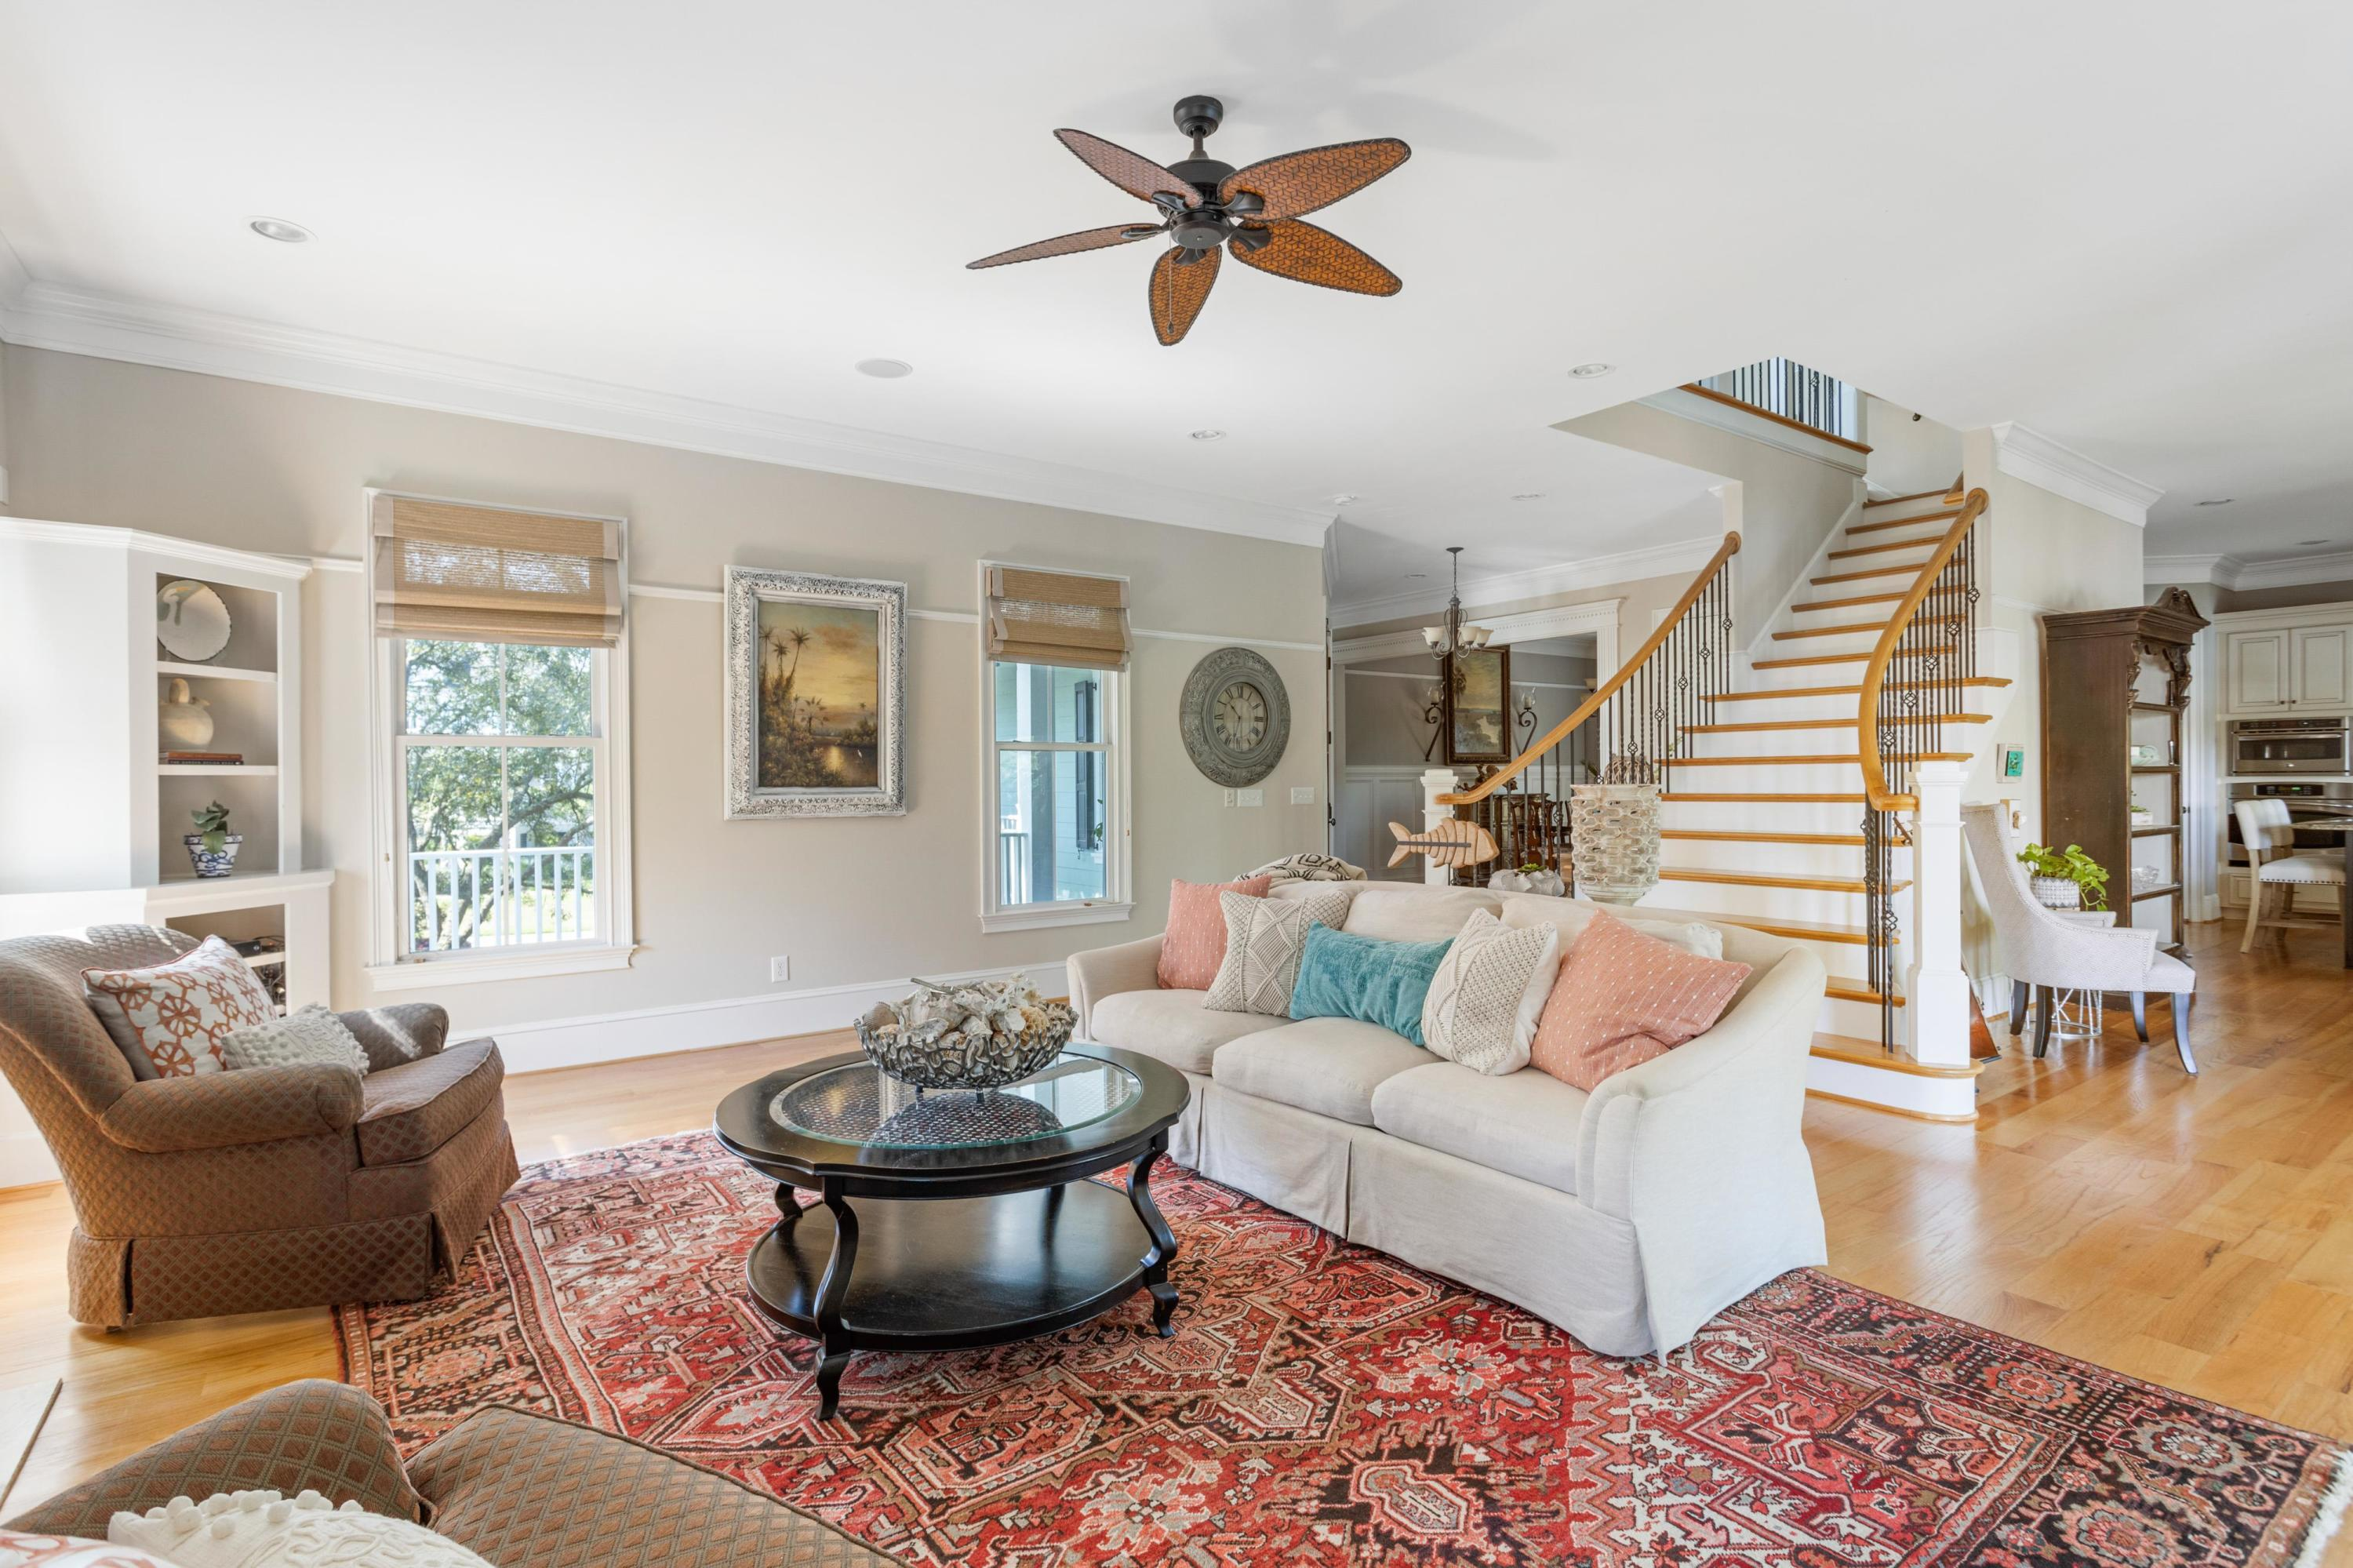 Rivertowne Country Club Homes For Sale - 1629 Rivertowne Country Club, Mount Pleasant, SC - 53